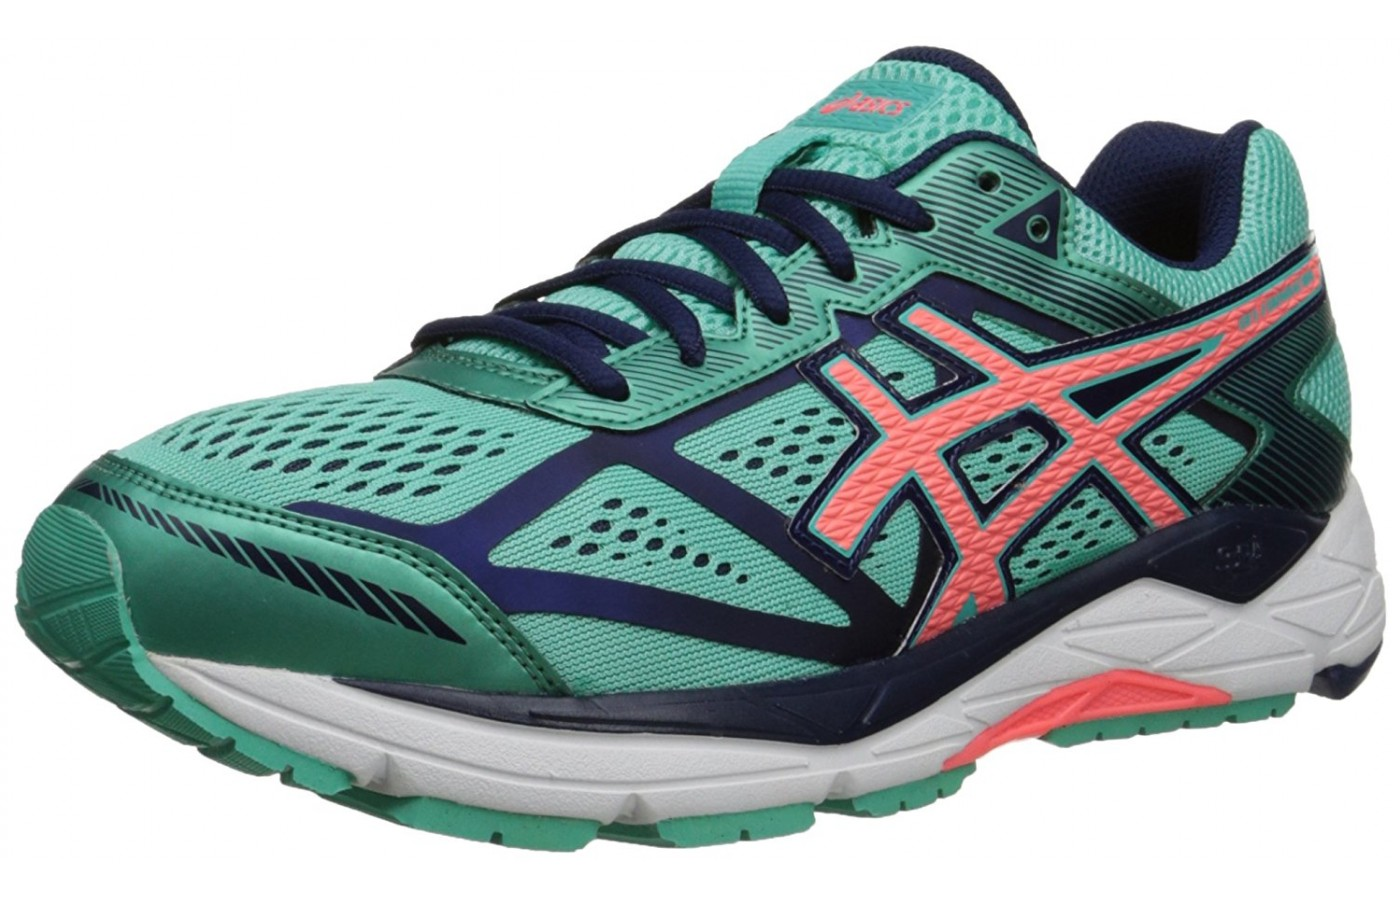 Persona responsable abortar tengo hambre  Asics Gel Foundation 12 Tested for Performance in 2020 | WalkJogRun